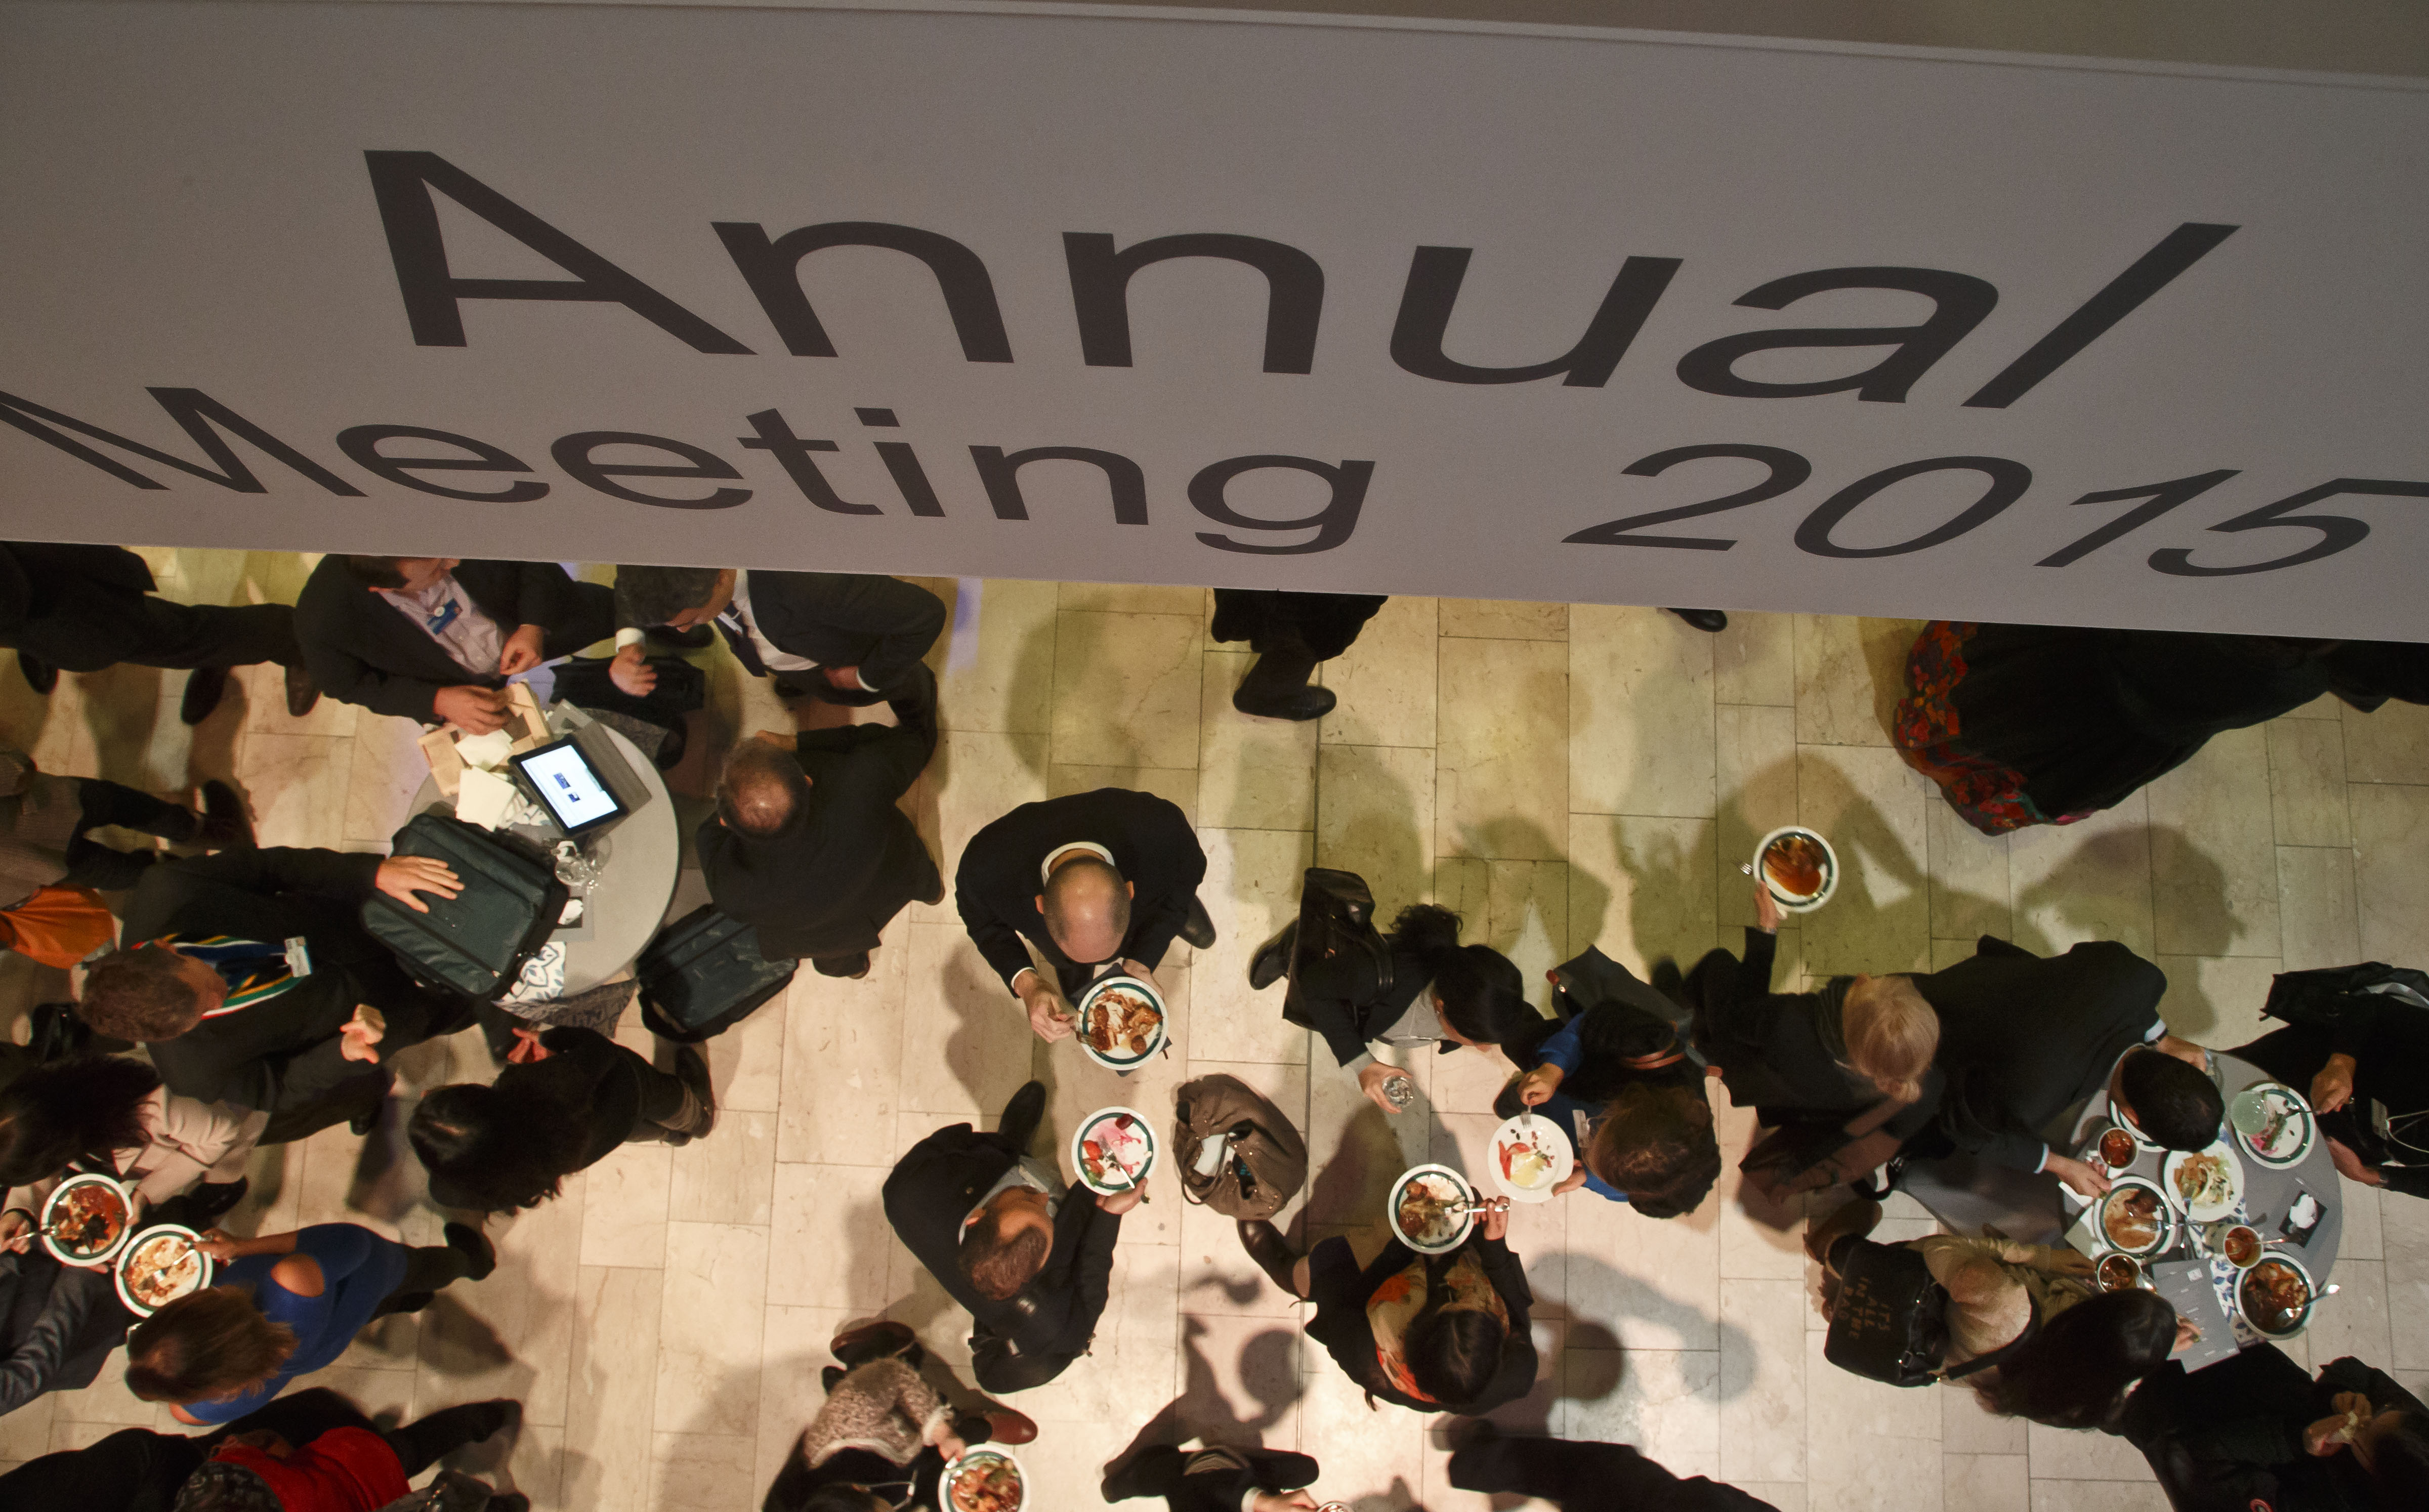 Participants gather during lunch time at the World Economic Forum in Davos, Switzerland, Saturday, Jan. 24, 2015. The world's financial and political forum at the Swiss ski resort will end today. (AP Photo/Michel Euler)